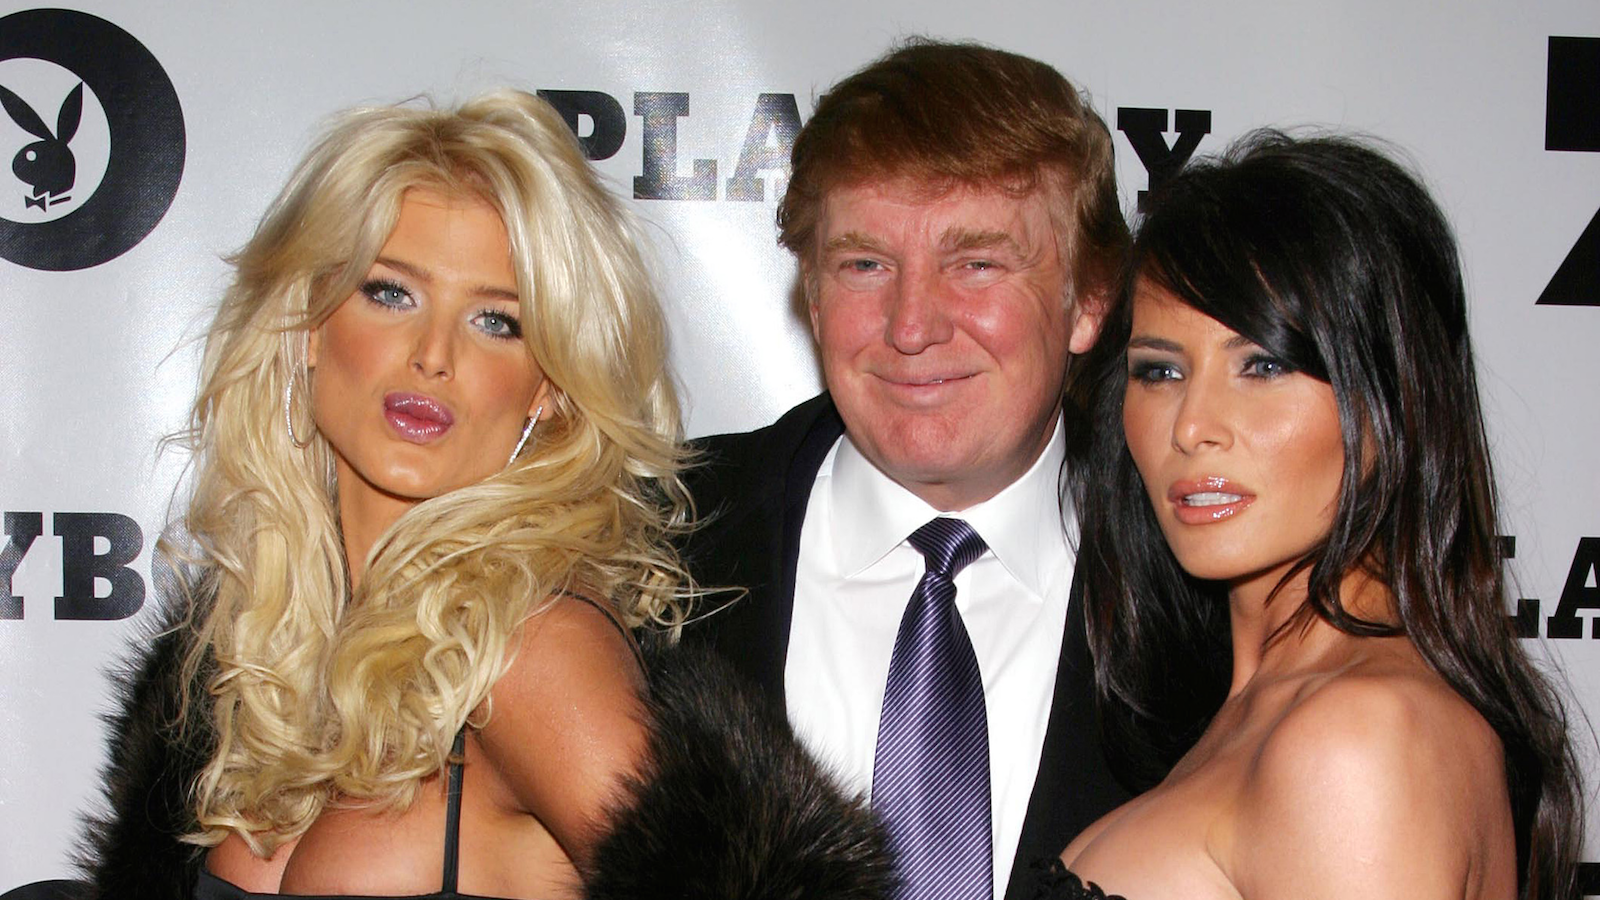 Donald Trump Reportedly Wanted His Women Staffers To Pose -7000